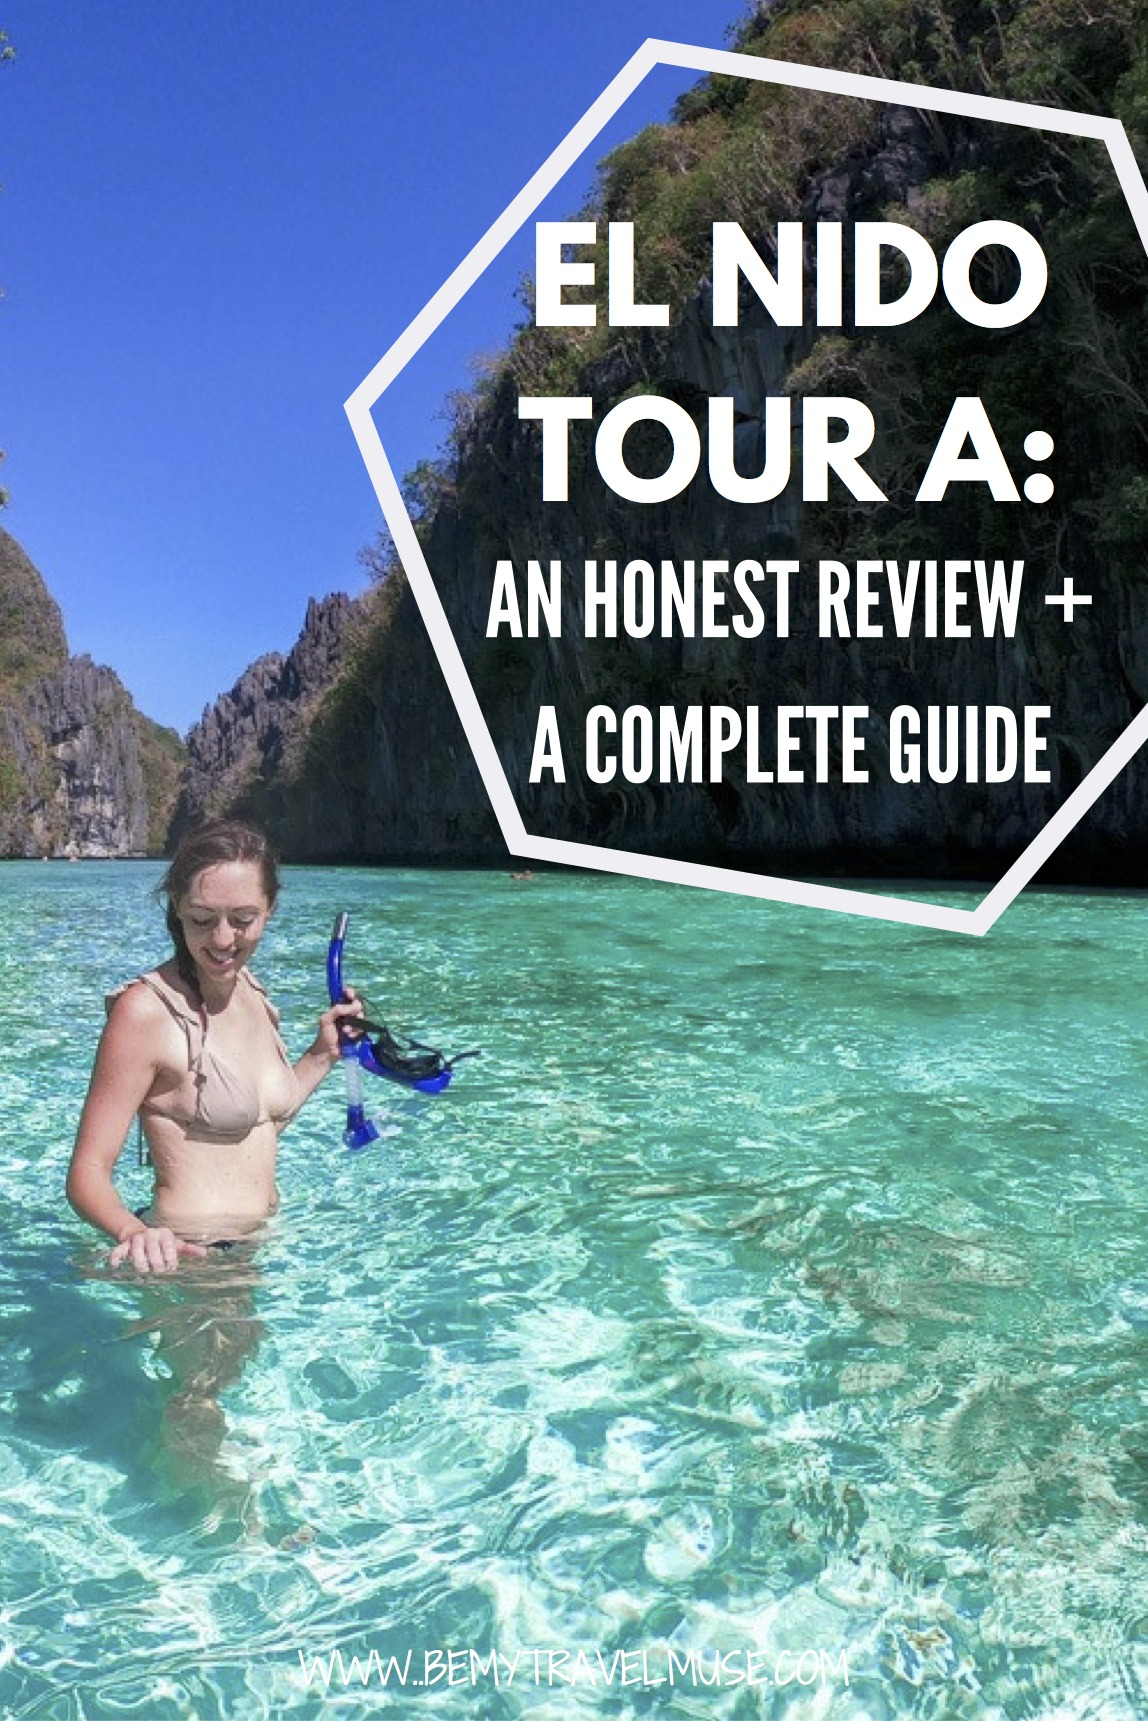 A complete guide to El Nido Tour A, an awesome island hopping tour around the beautiful islands in El Nido, Palawan, the Philippines. Check out the stops, which includes a secret lagoon, snorkeling spots, food options, and a list of things to bring with you. This is the only guide you will need, if you are joining Tour A!